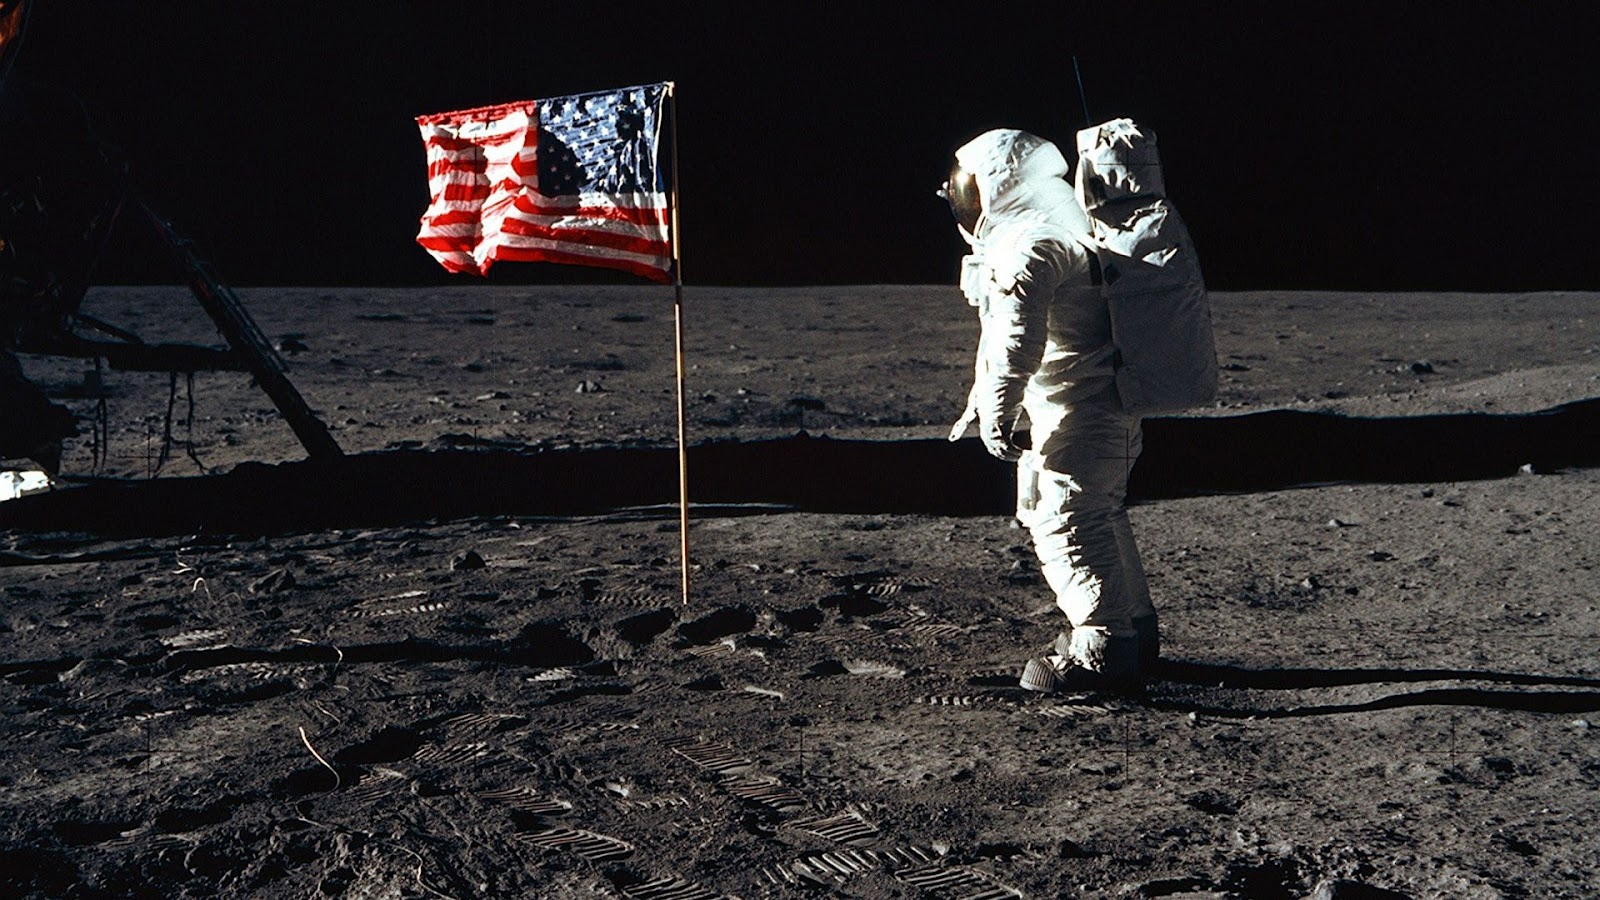 http://4.bp.blogspot.com/-iSiaqBXzS8c/UCY3lx3YZKI/AAAAAAAAMb8/JN-4Ti4eFZ4/s1600/buzz-aldrin-and-the-u.s.-flag-on-the-moon_1920x1080_48912.jpg